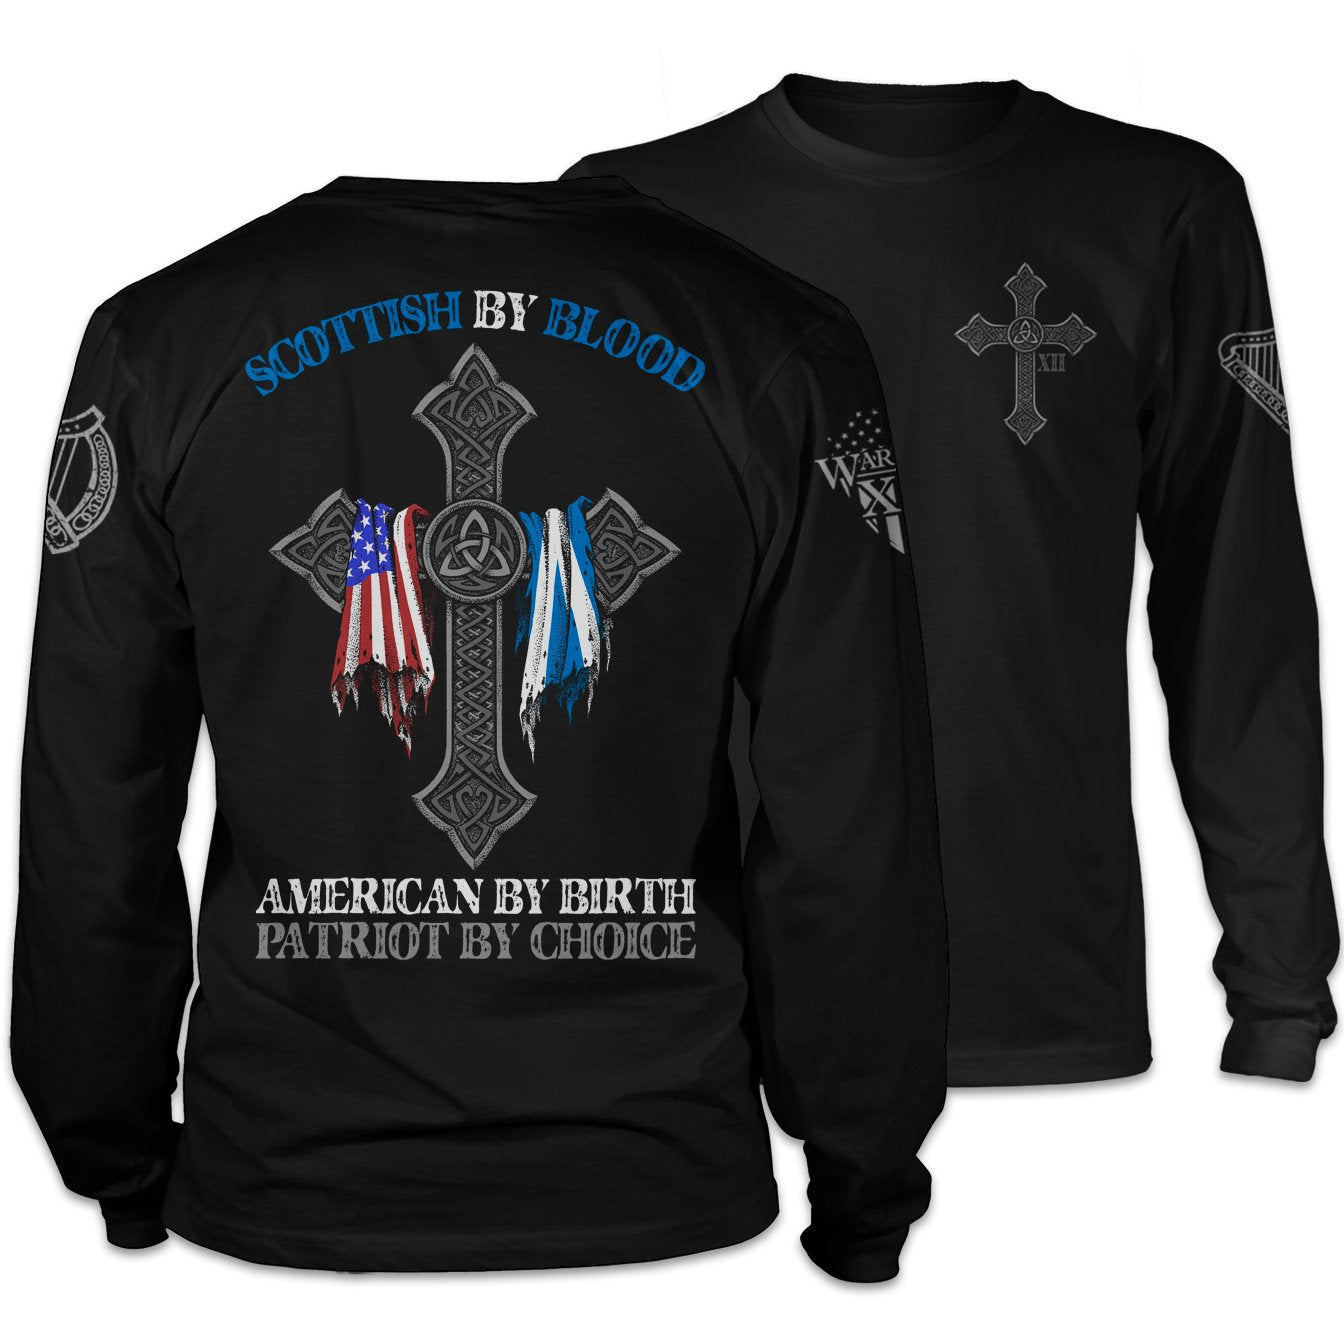 Scottish By Blood Long Sleeve